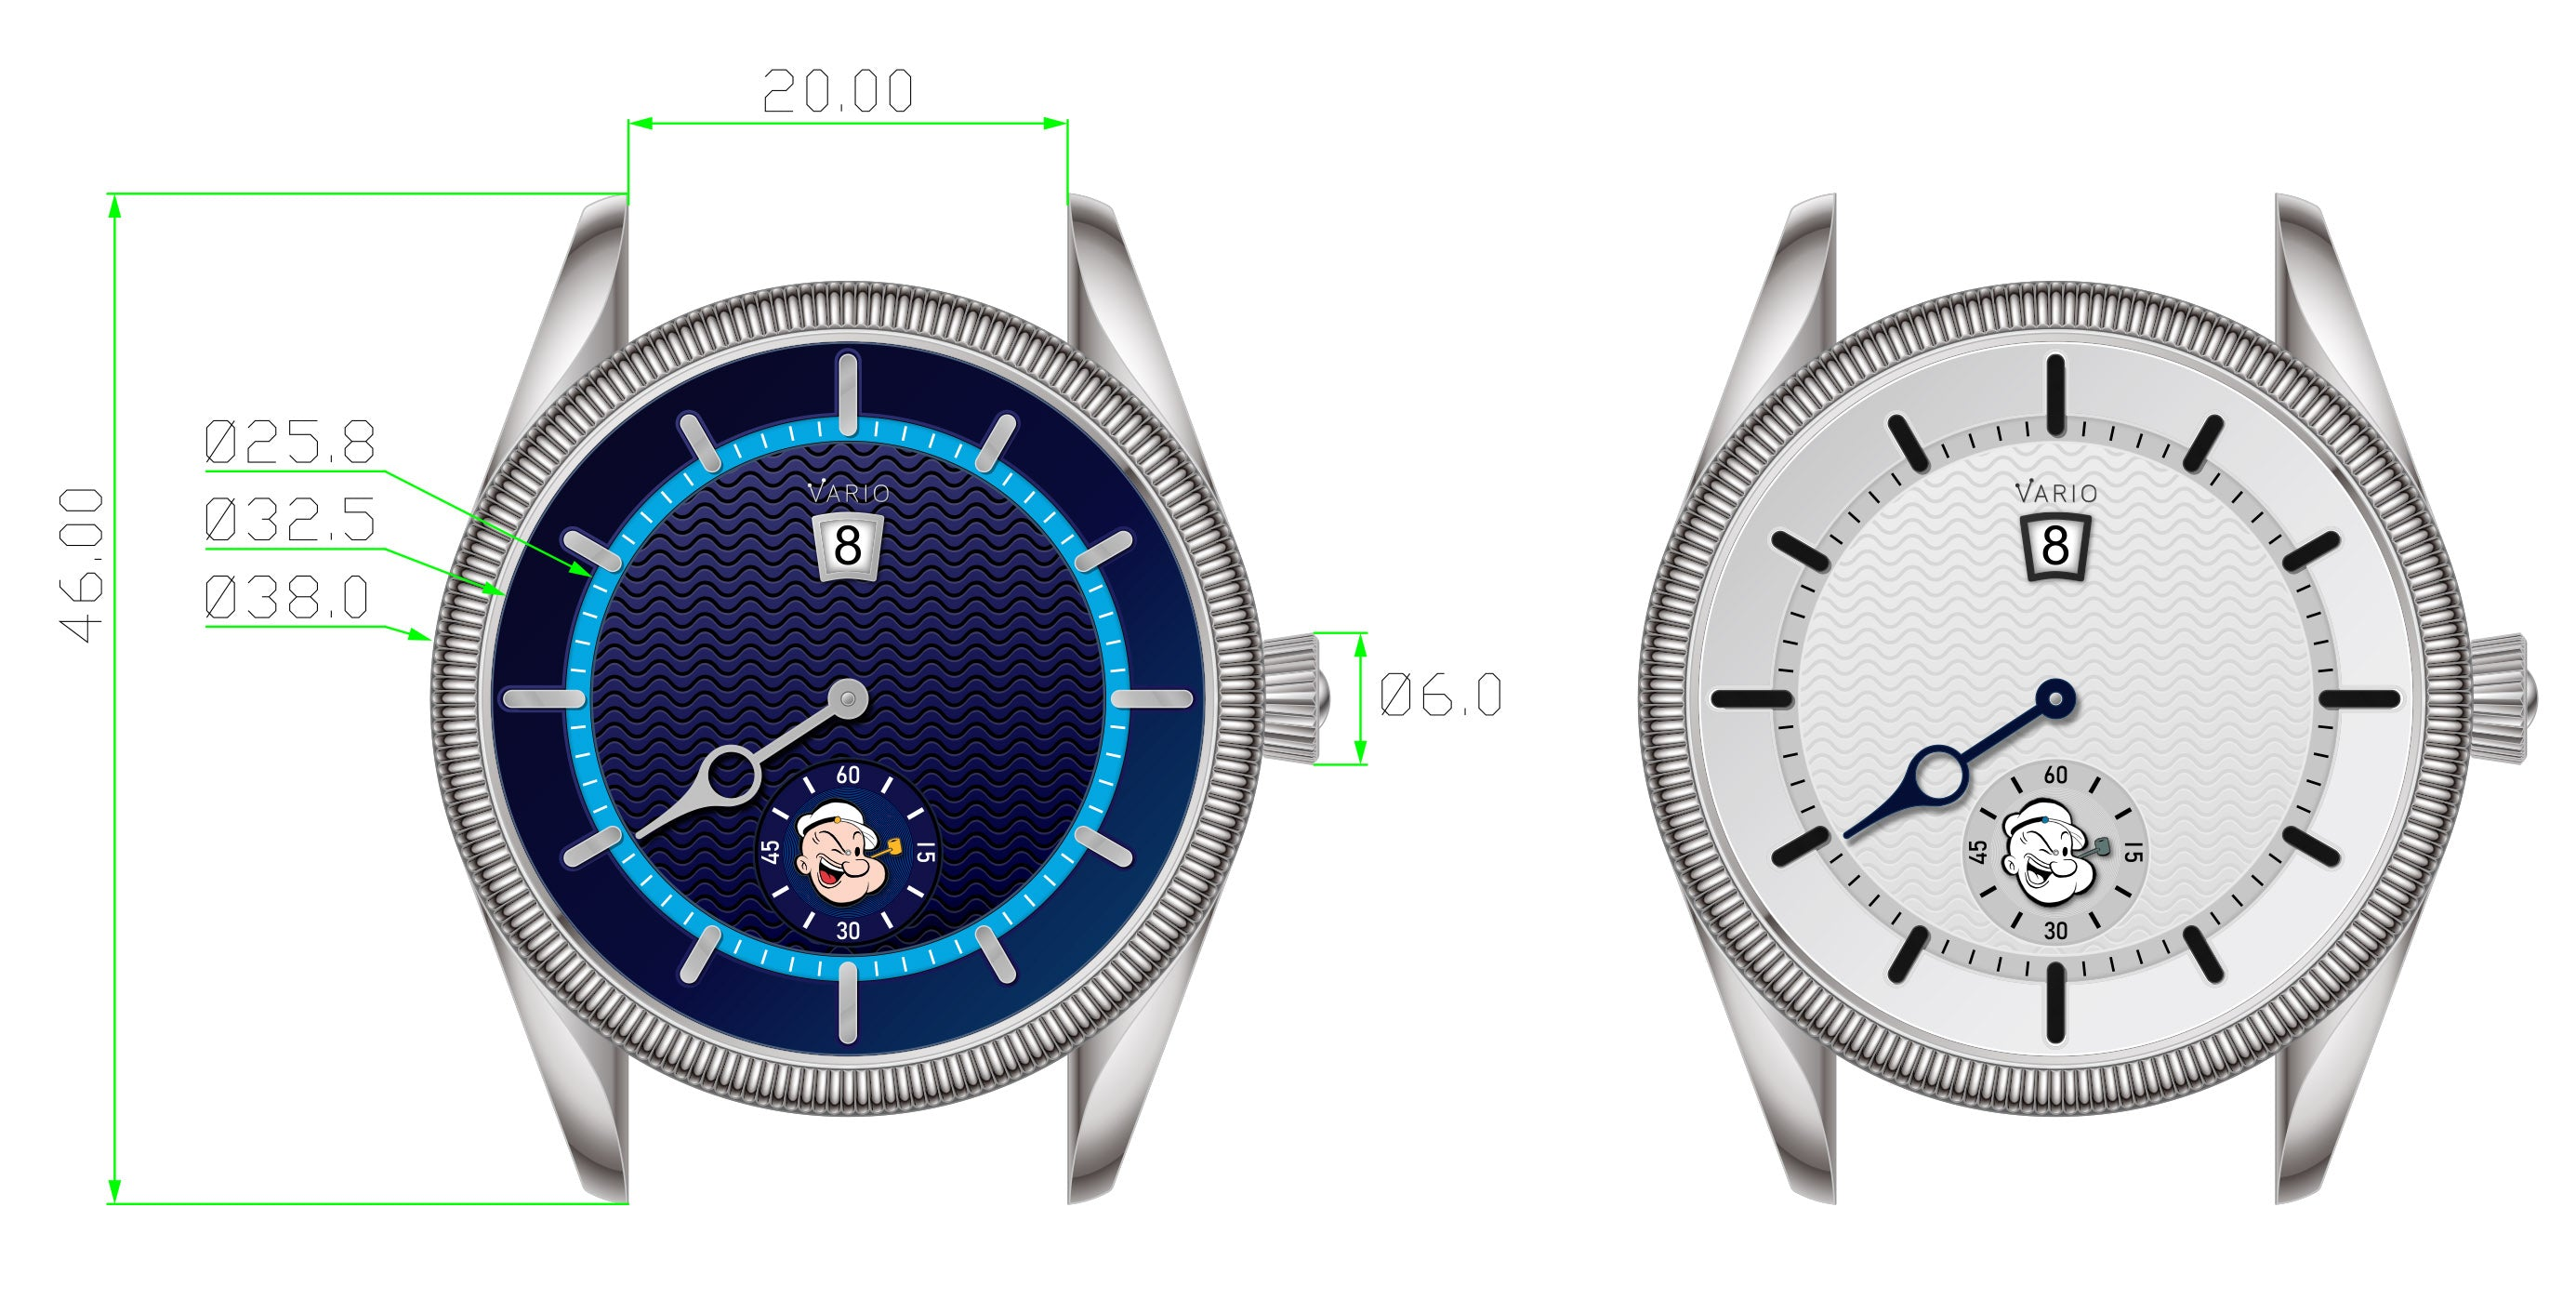 vario nautical 38 mm dresswatch met popeye-kop